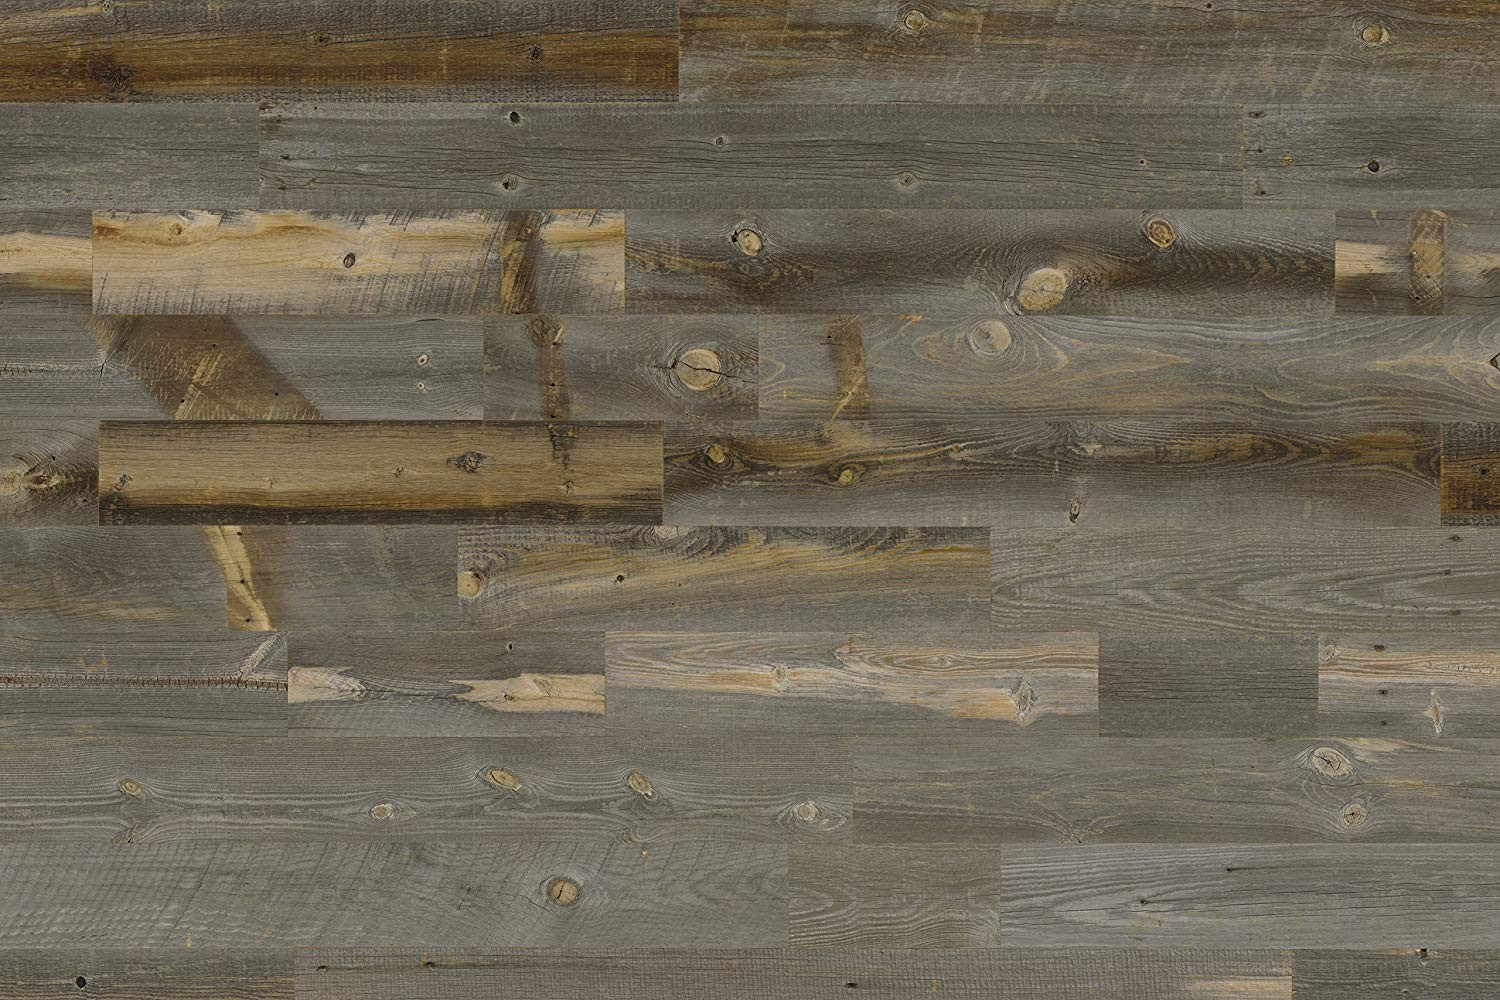 square foot price to refinish hardwood floors of amazon com stikwood reclaimed weathered wood silver gray brown 20 inside amazon com stikwood reclaimed weathered wood silver gray brown 20 square feet easy peel and stick application baby